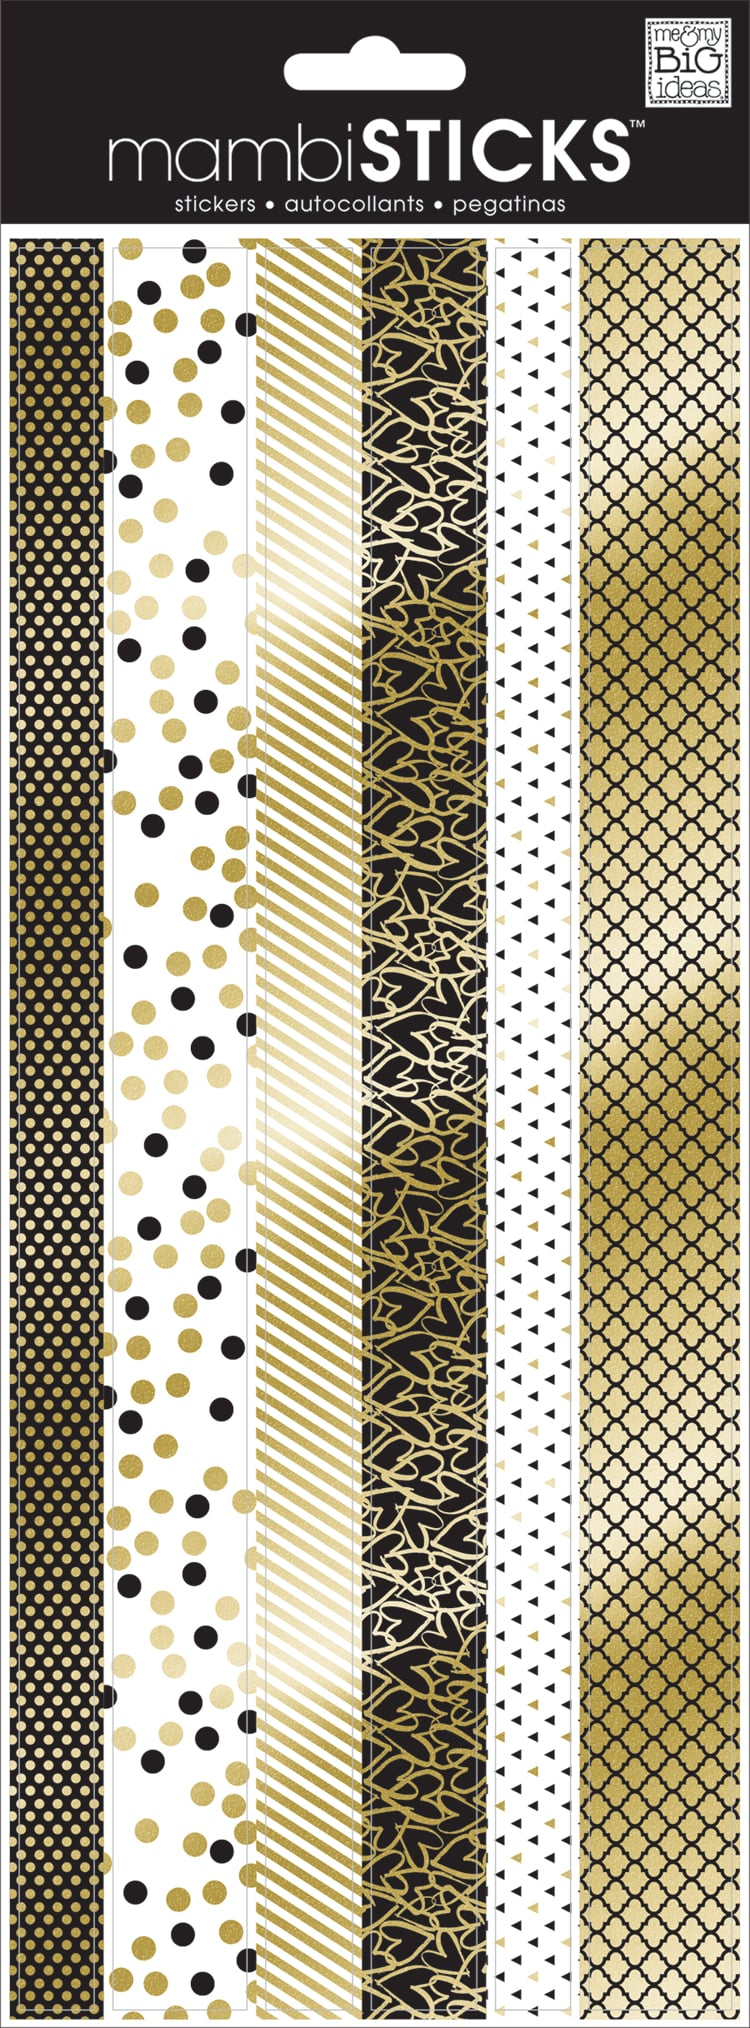 Black & Gold mambiSTICKS boarder stcikers | me & my BIG ideas.jpg